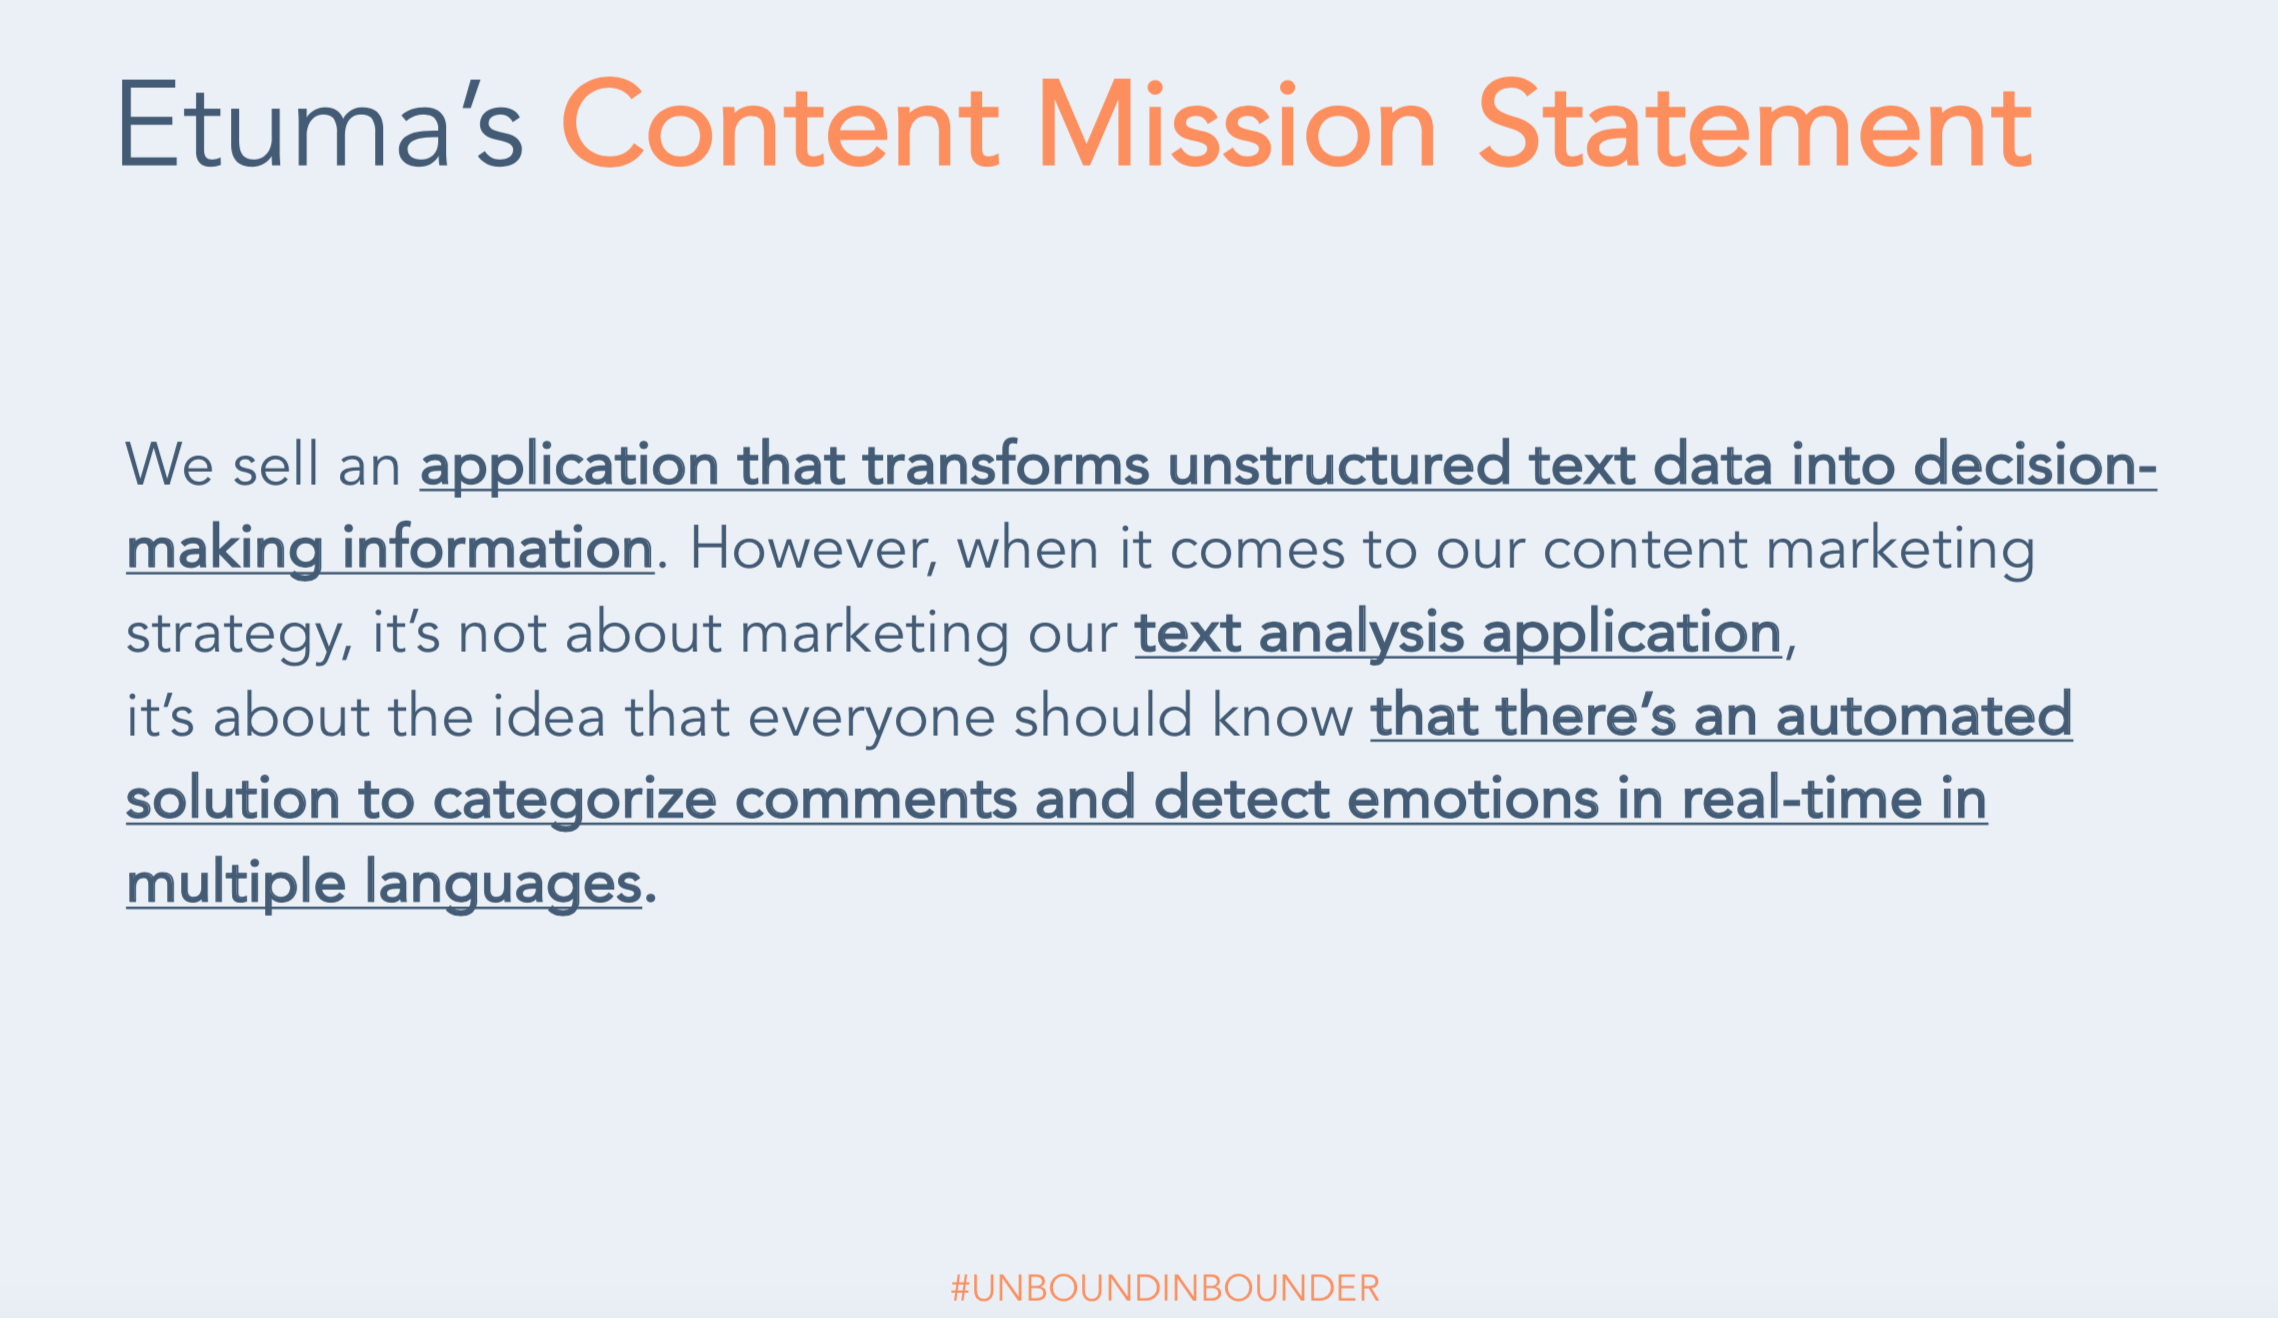 Etuma Content Mission Statement